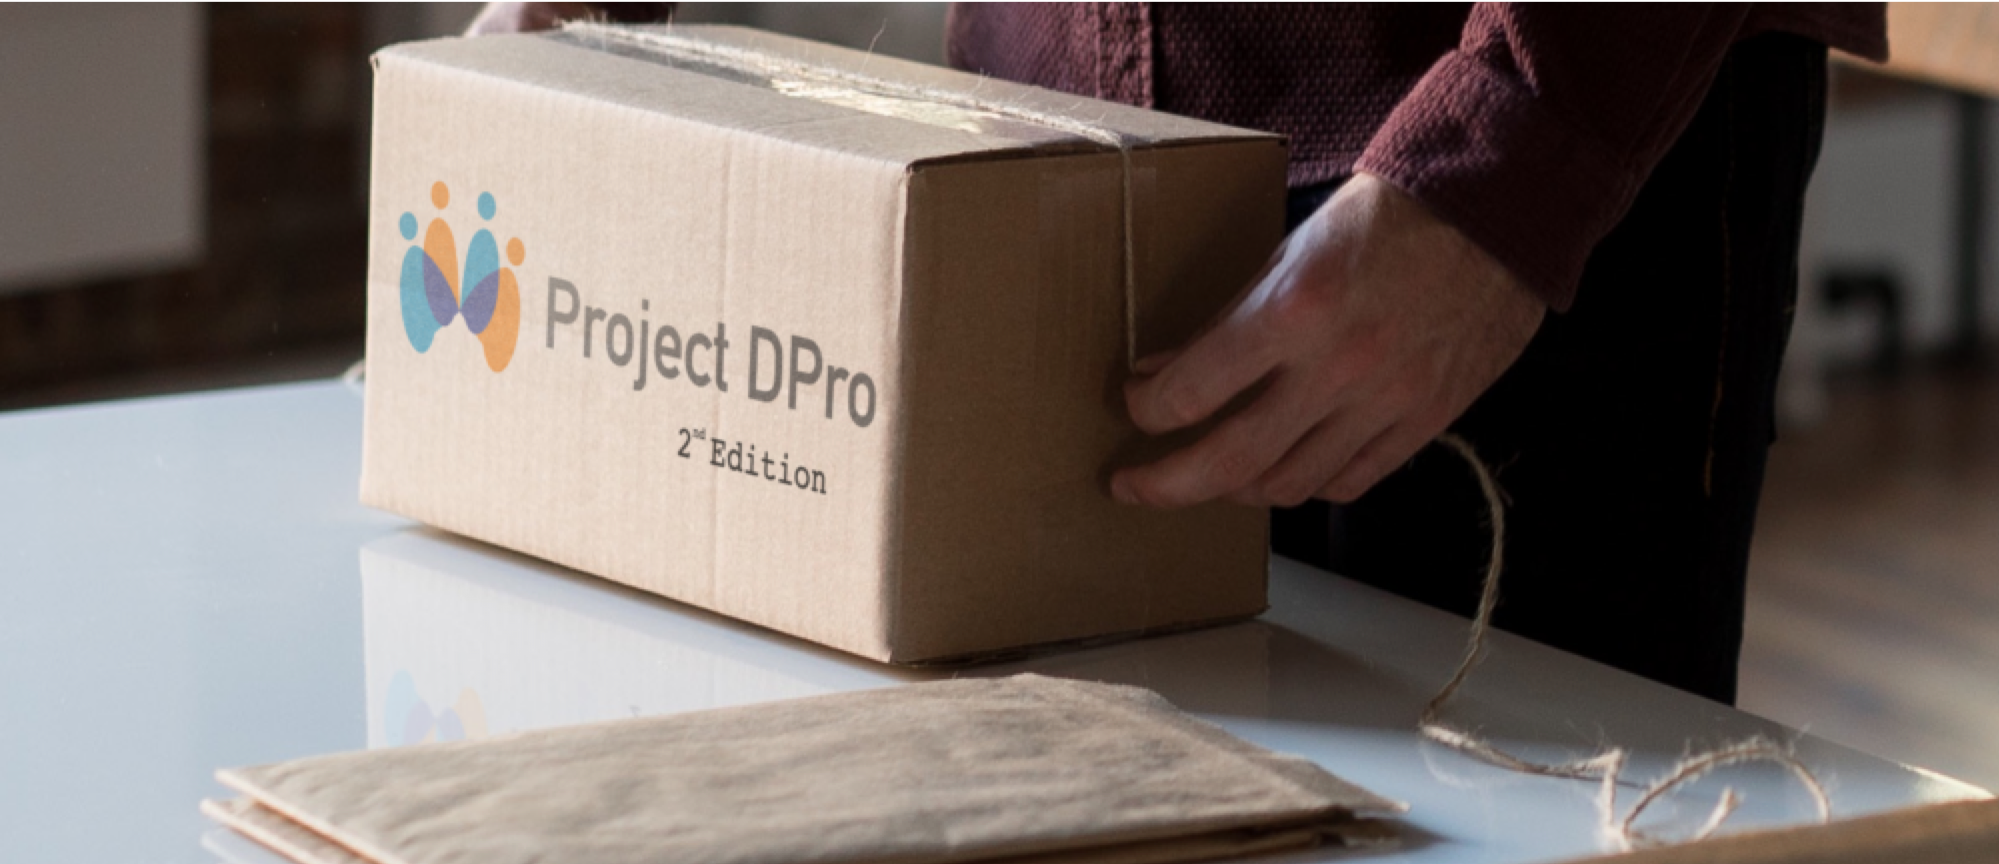 Project DPro